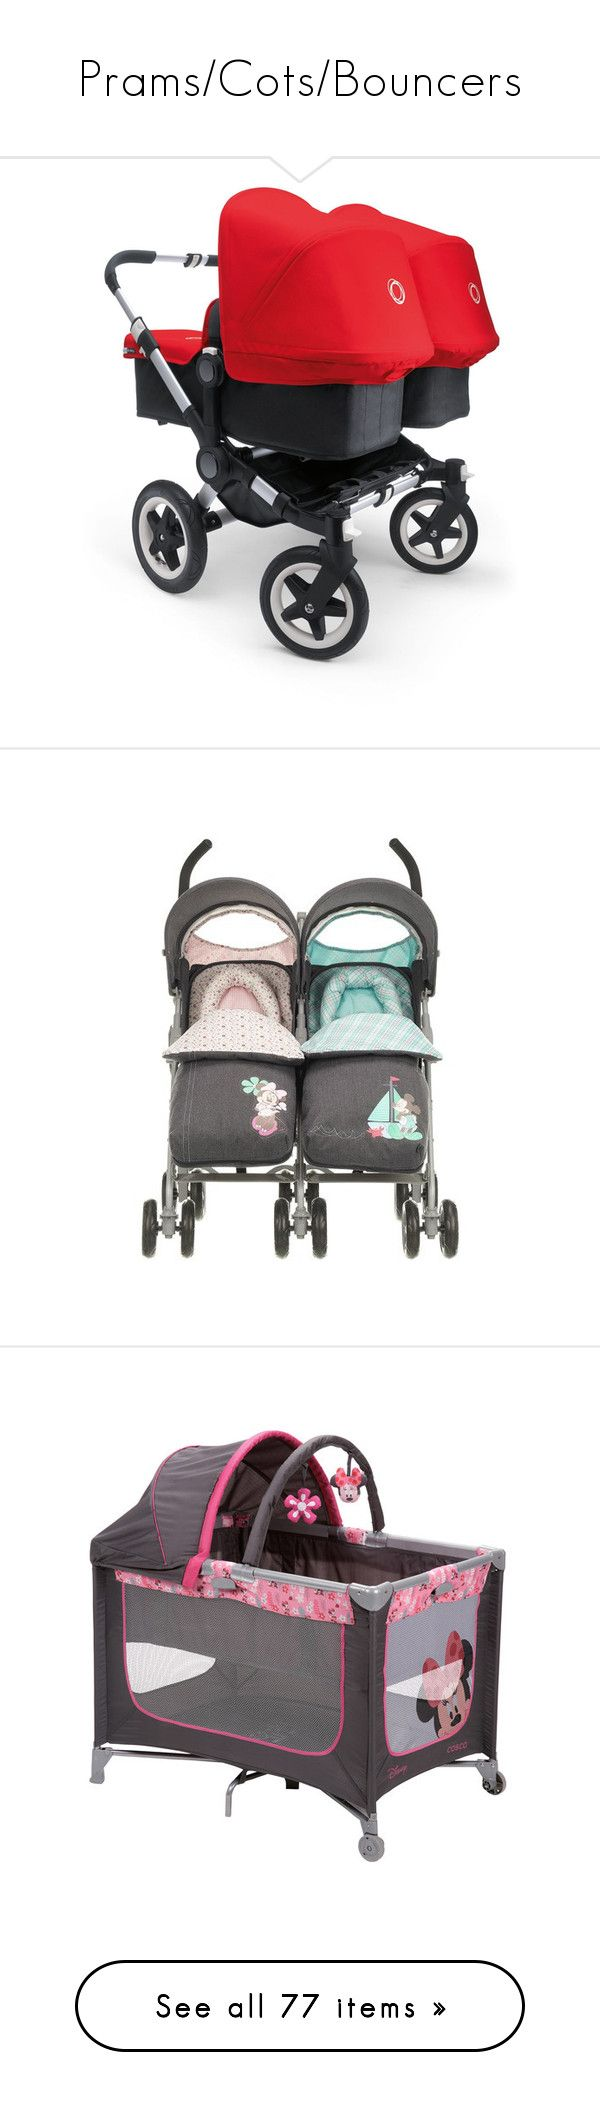 Uncategorized fisher price comfort curve bouncer new free shipping ebay -  Prams Cots Bouncers By Theycallyoucrybaby Liked On Polyvore Featuring Babies